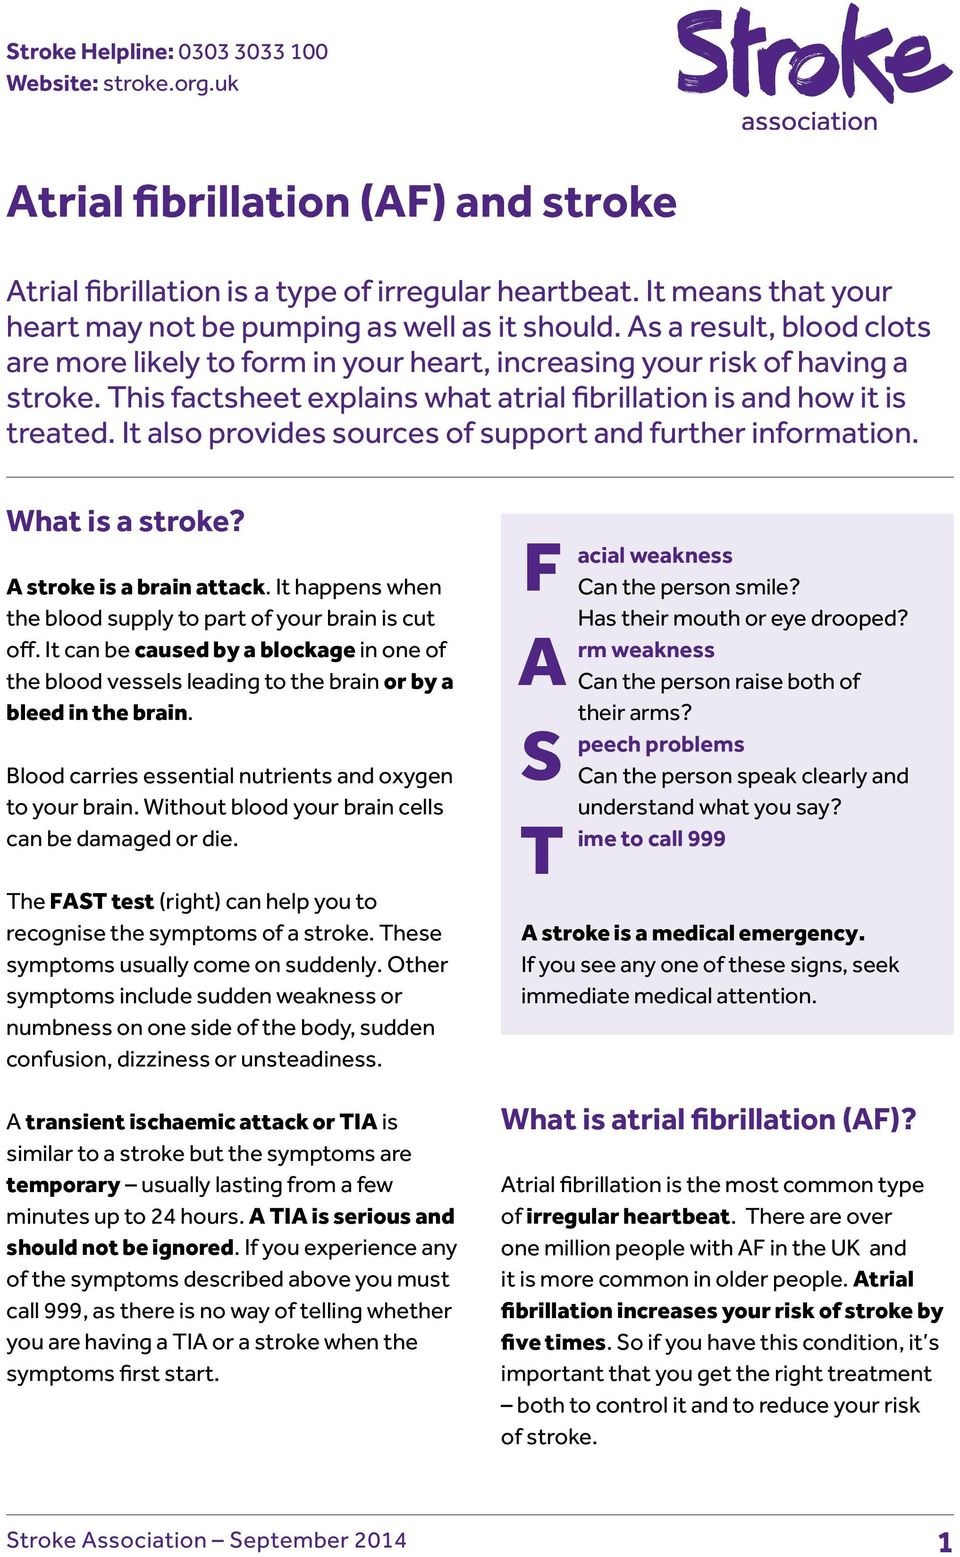 This factsheet explains what atrial fibrillation is and how it is treated. It also provides sources of support and further information. What is a stroke? A stroke is a brain attack.